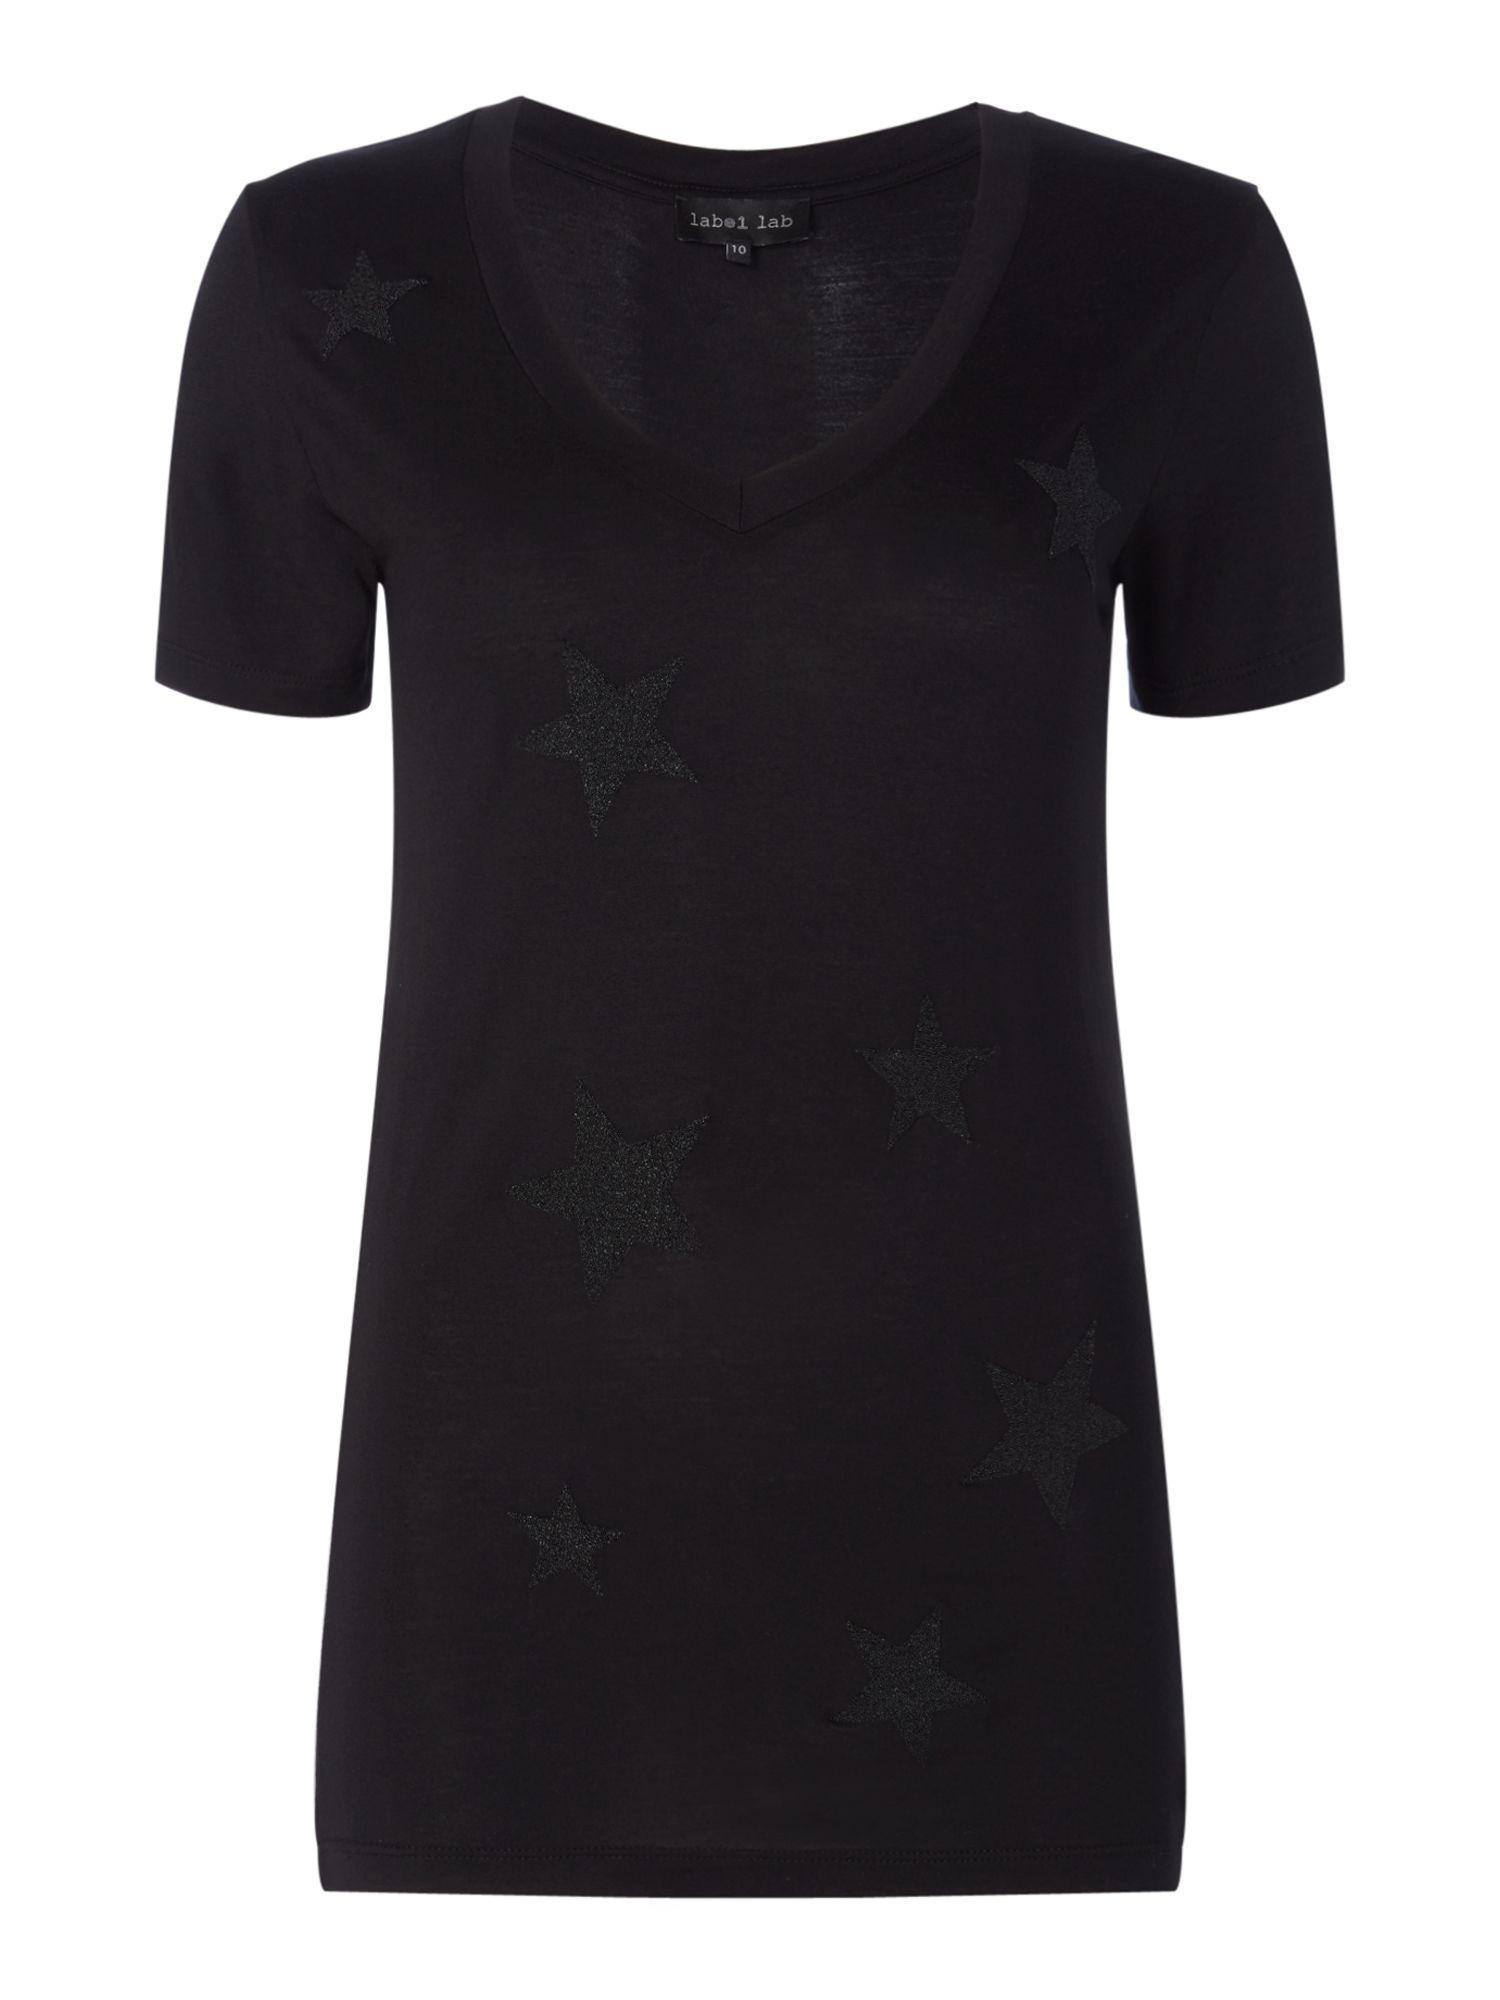 Label Lab Star Tee, Black